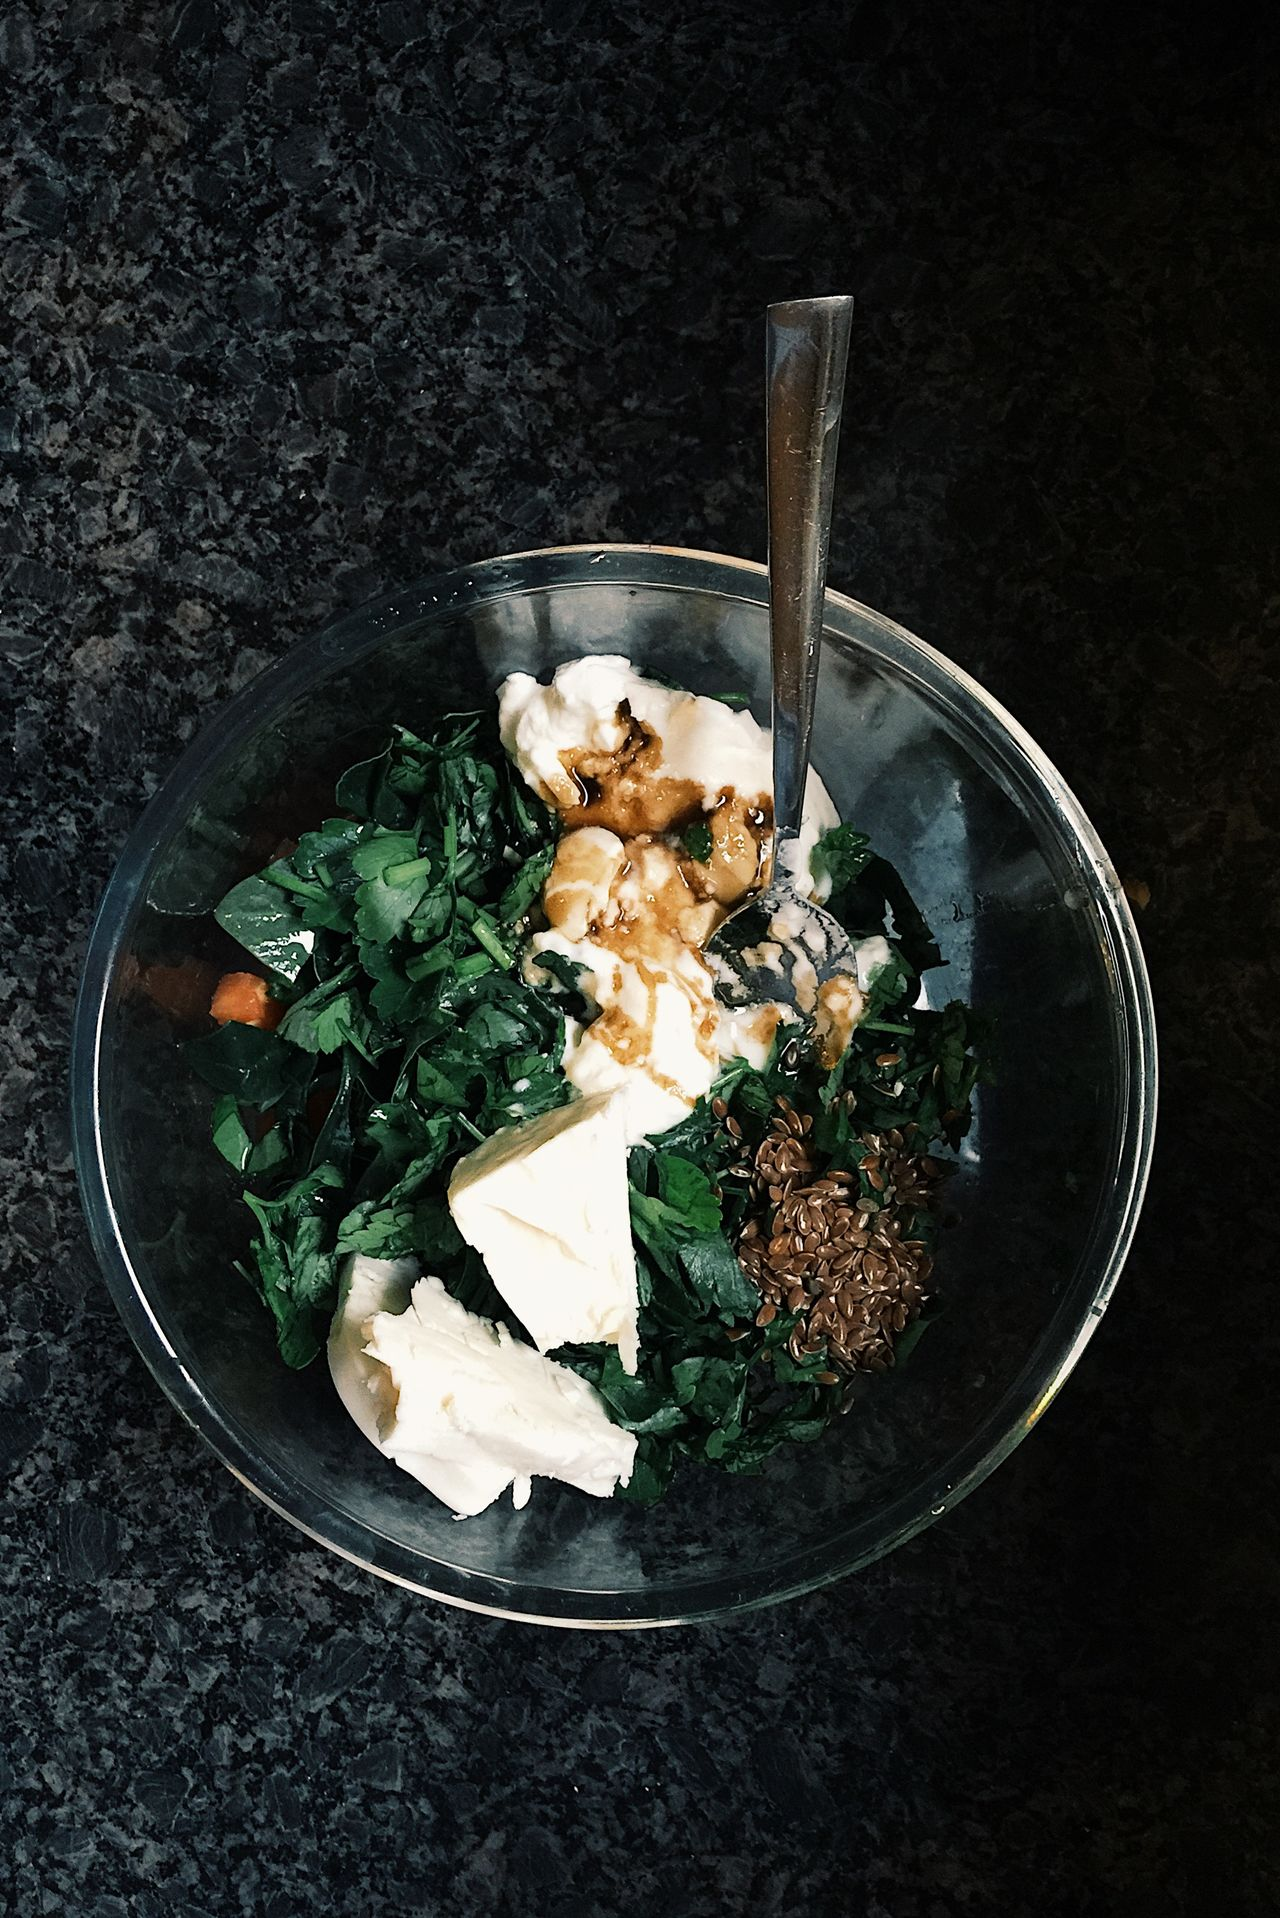 Spinach, yogurt, flax seed and chickpeas salad Cooking Delicious Flax Seeds Food Food And Drink Foodporn Healthy Healthy Eating Healthy Lifestyle Home Cooking Ingredient Meal Organic Recipe Salad Spinach Turkey Vegetables Vegetarian Food Yogurt Yummy